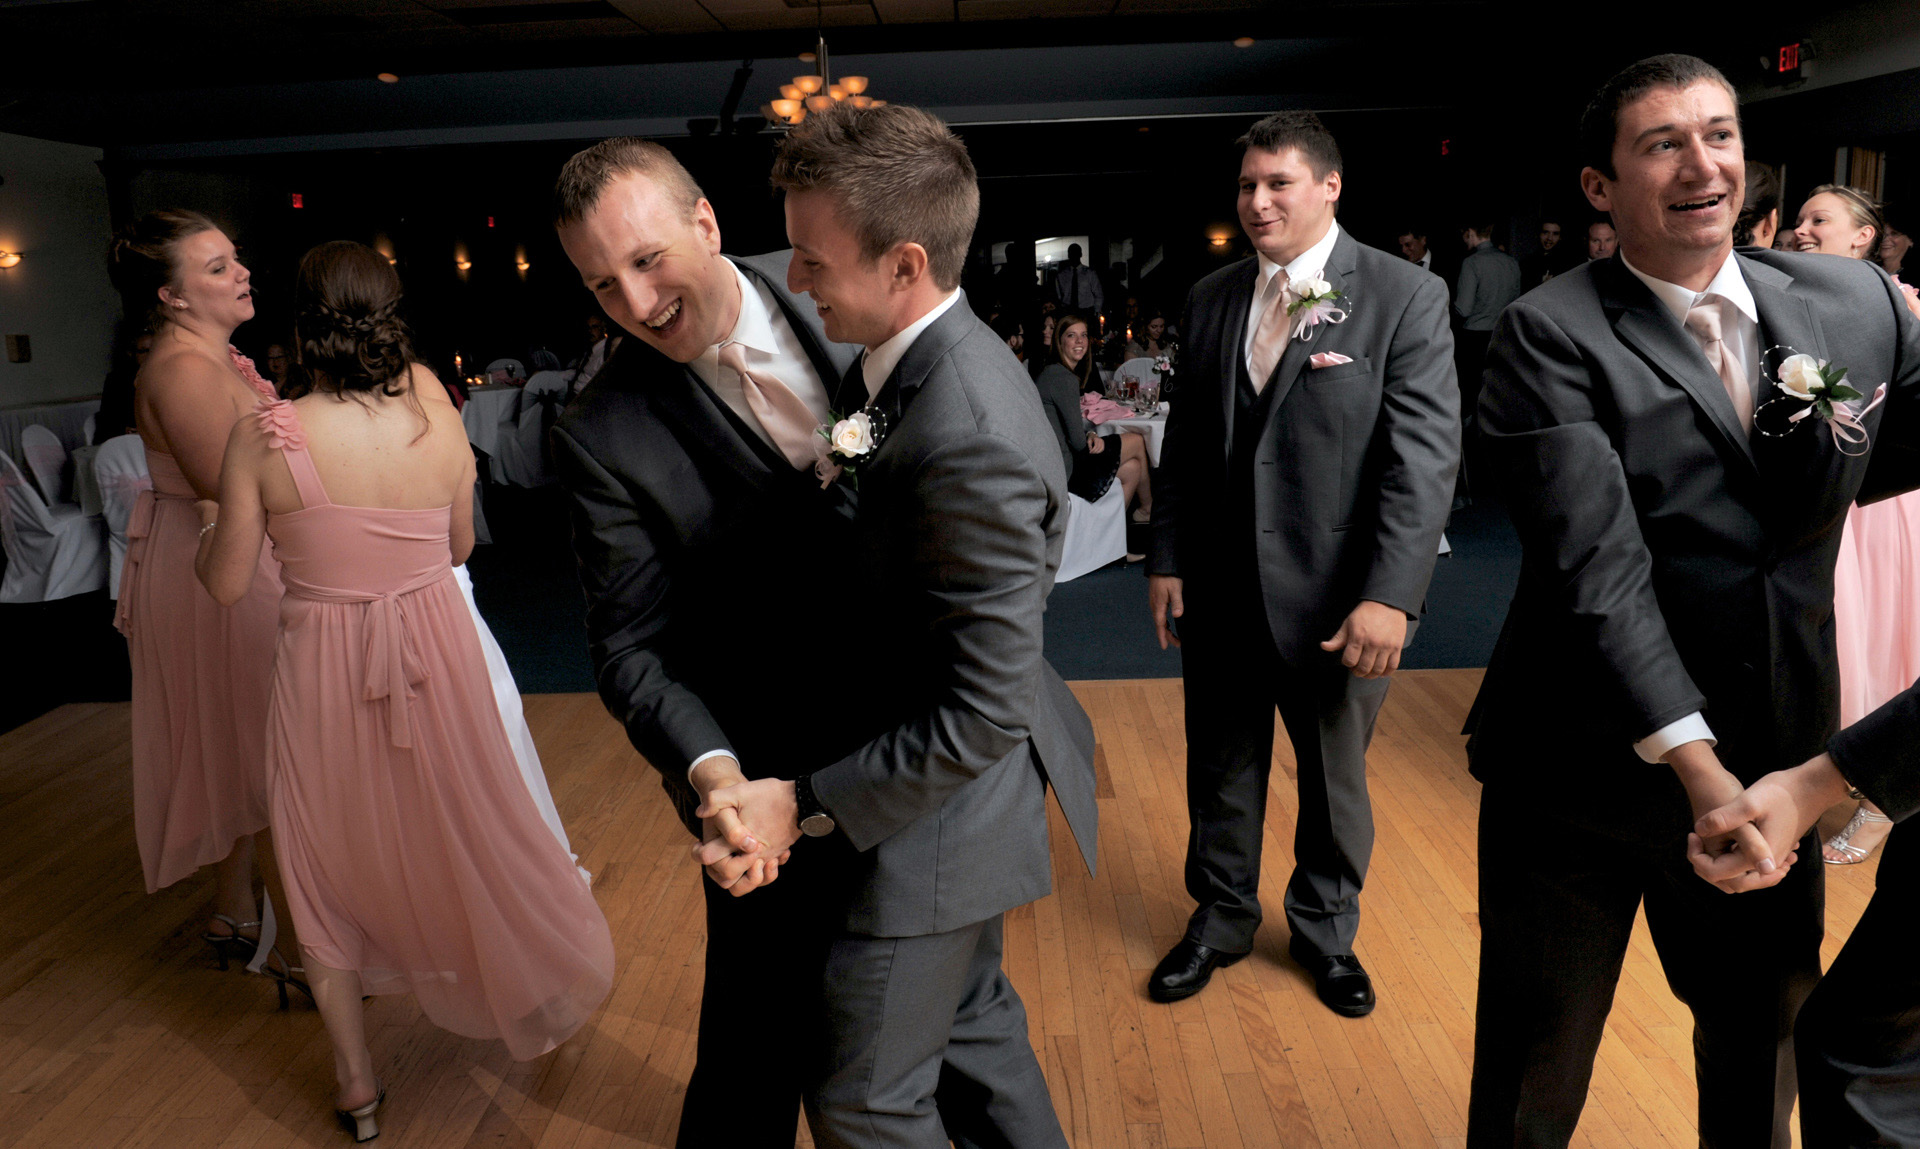 The Woodlands of Van Buren in Wayne, Michigan wedding photographer's photo of the groomsmen dance with the groom slow dance style after their wedding at the The Woodlands of Van Buren in Wayne, Michigan.